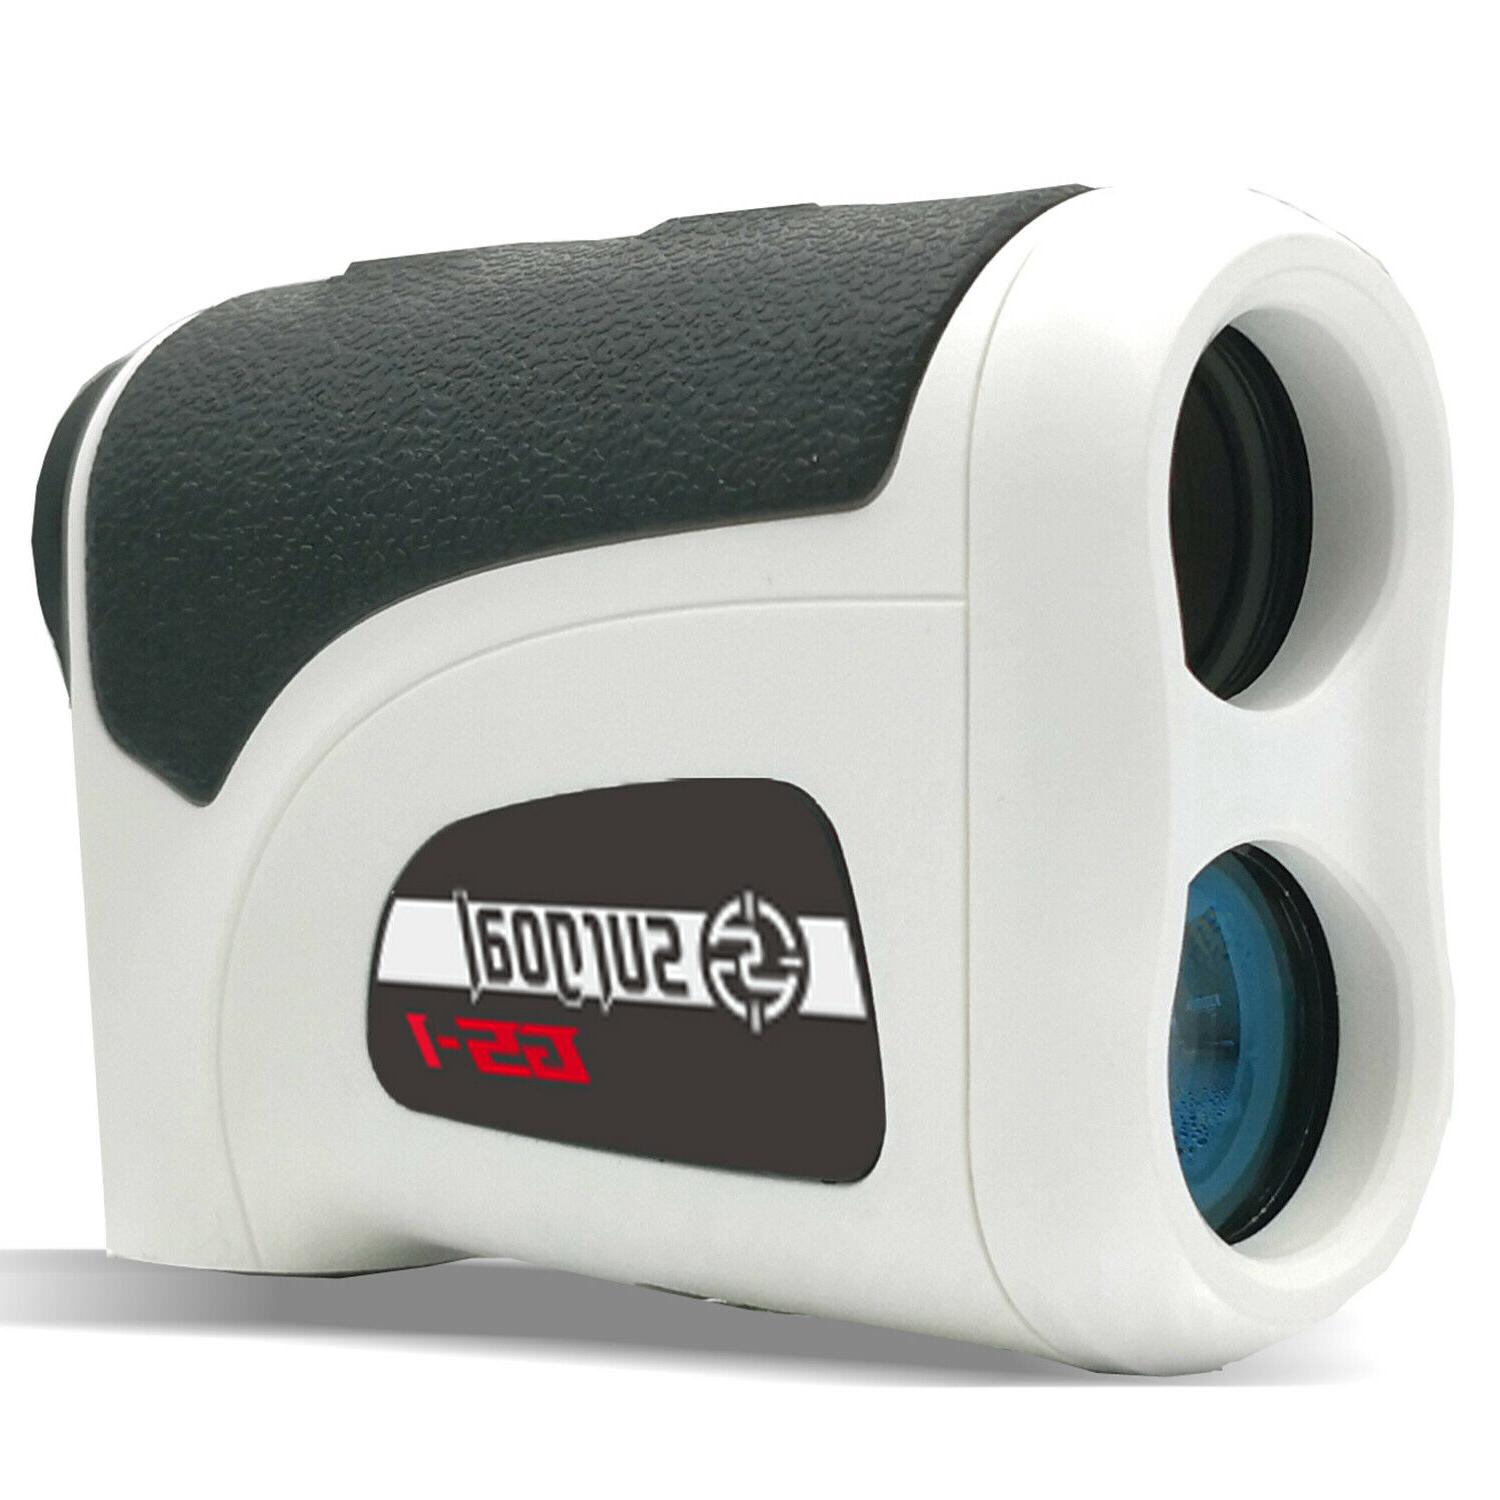 1200yd 6x mag laser golf range finder